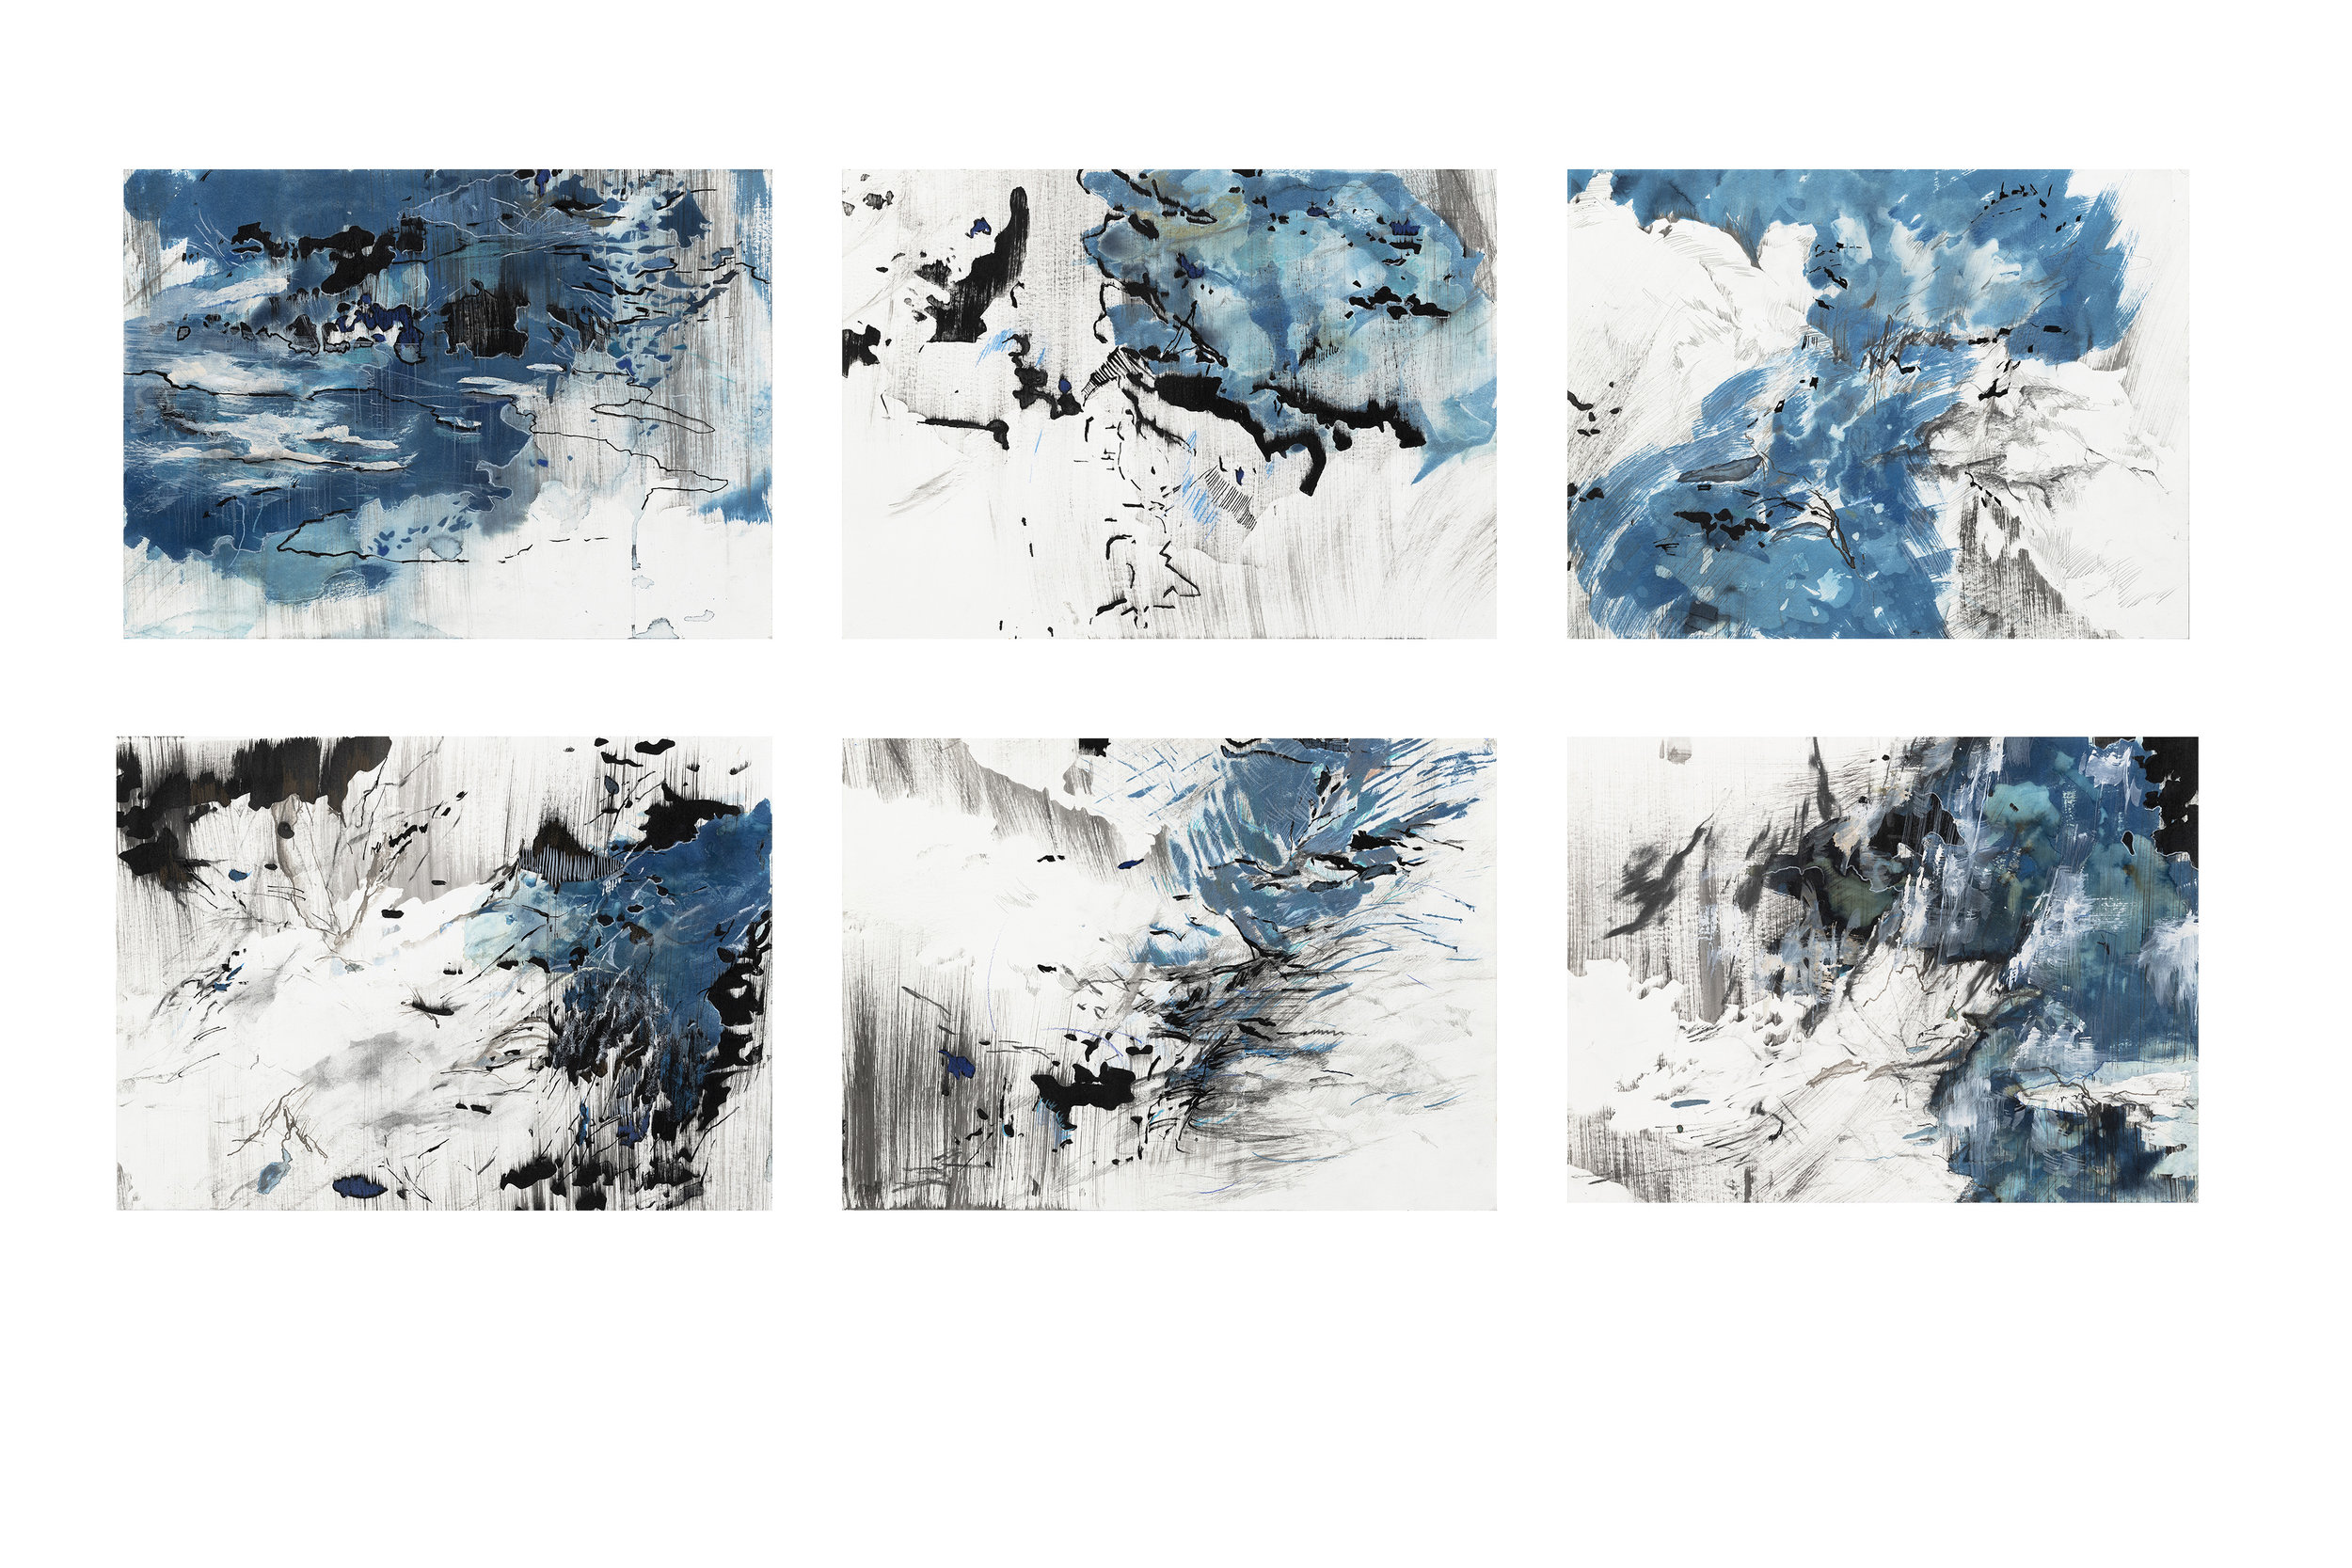 "Distance of Blue 3- 8  Cyanotype, Ink, acrylic, pencil, conte crayon, markers, and graphite on paper  2018  10 x 14"" each"